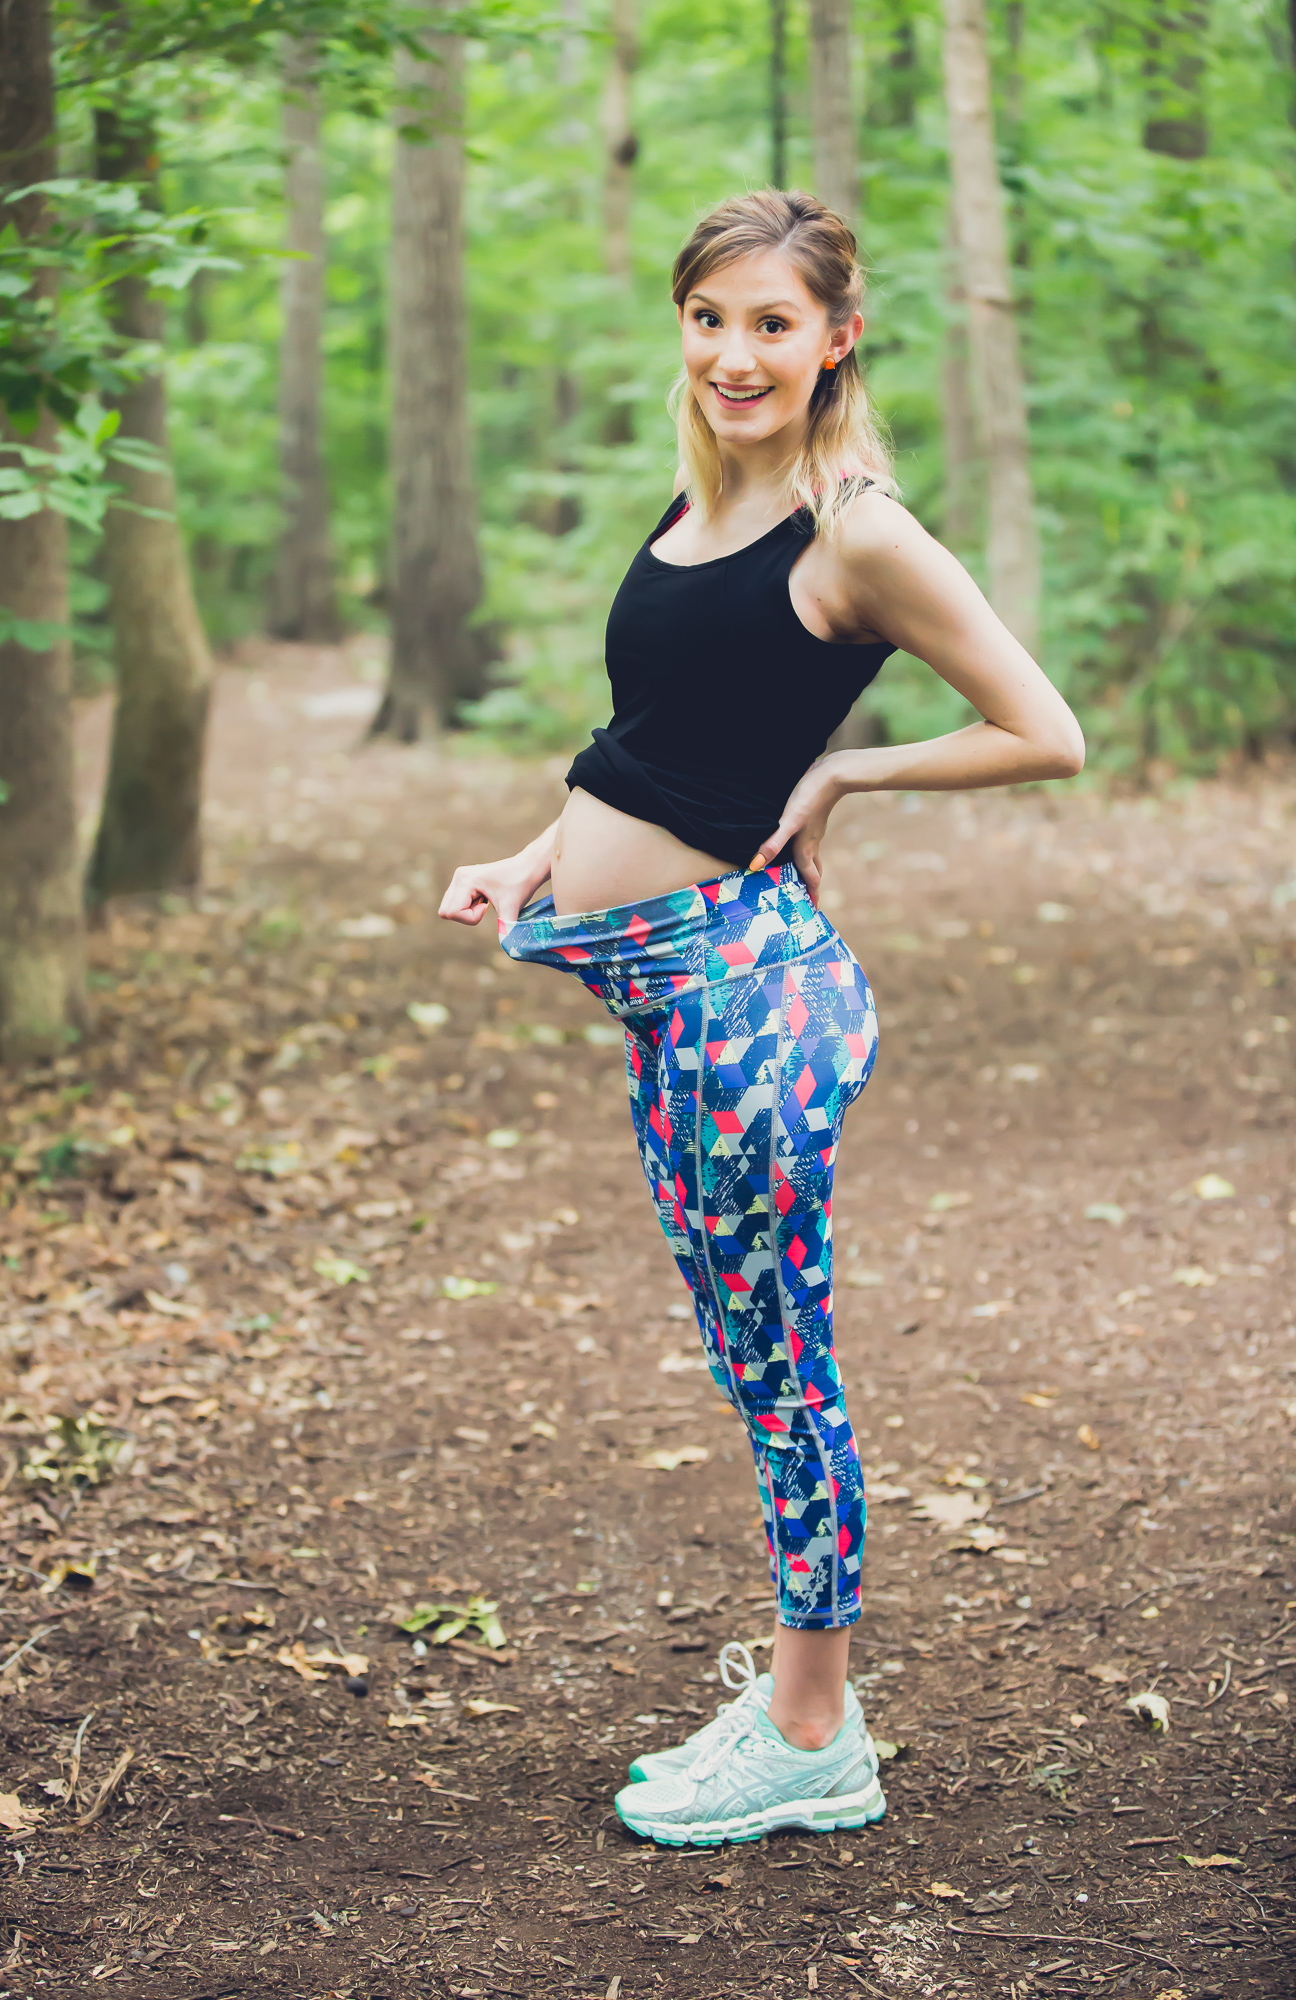 Lifestyle and fashion blogger Jessica Linn from Linn Style wearing athletic maternity wear from POP! Maternity a company from Australia. A geometric patterned capri yoga pants and a black singlet.